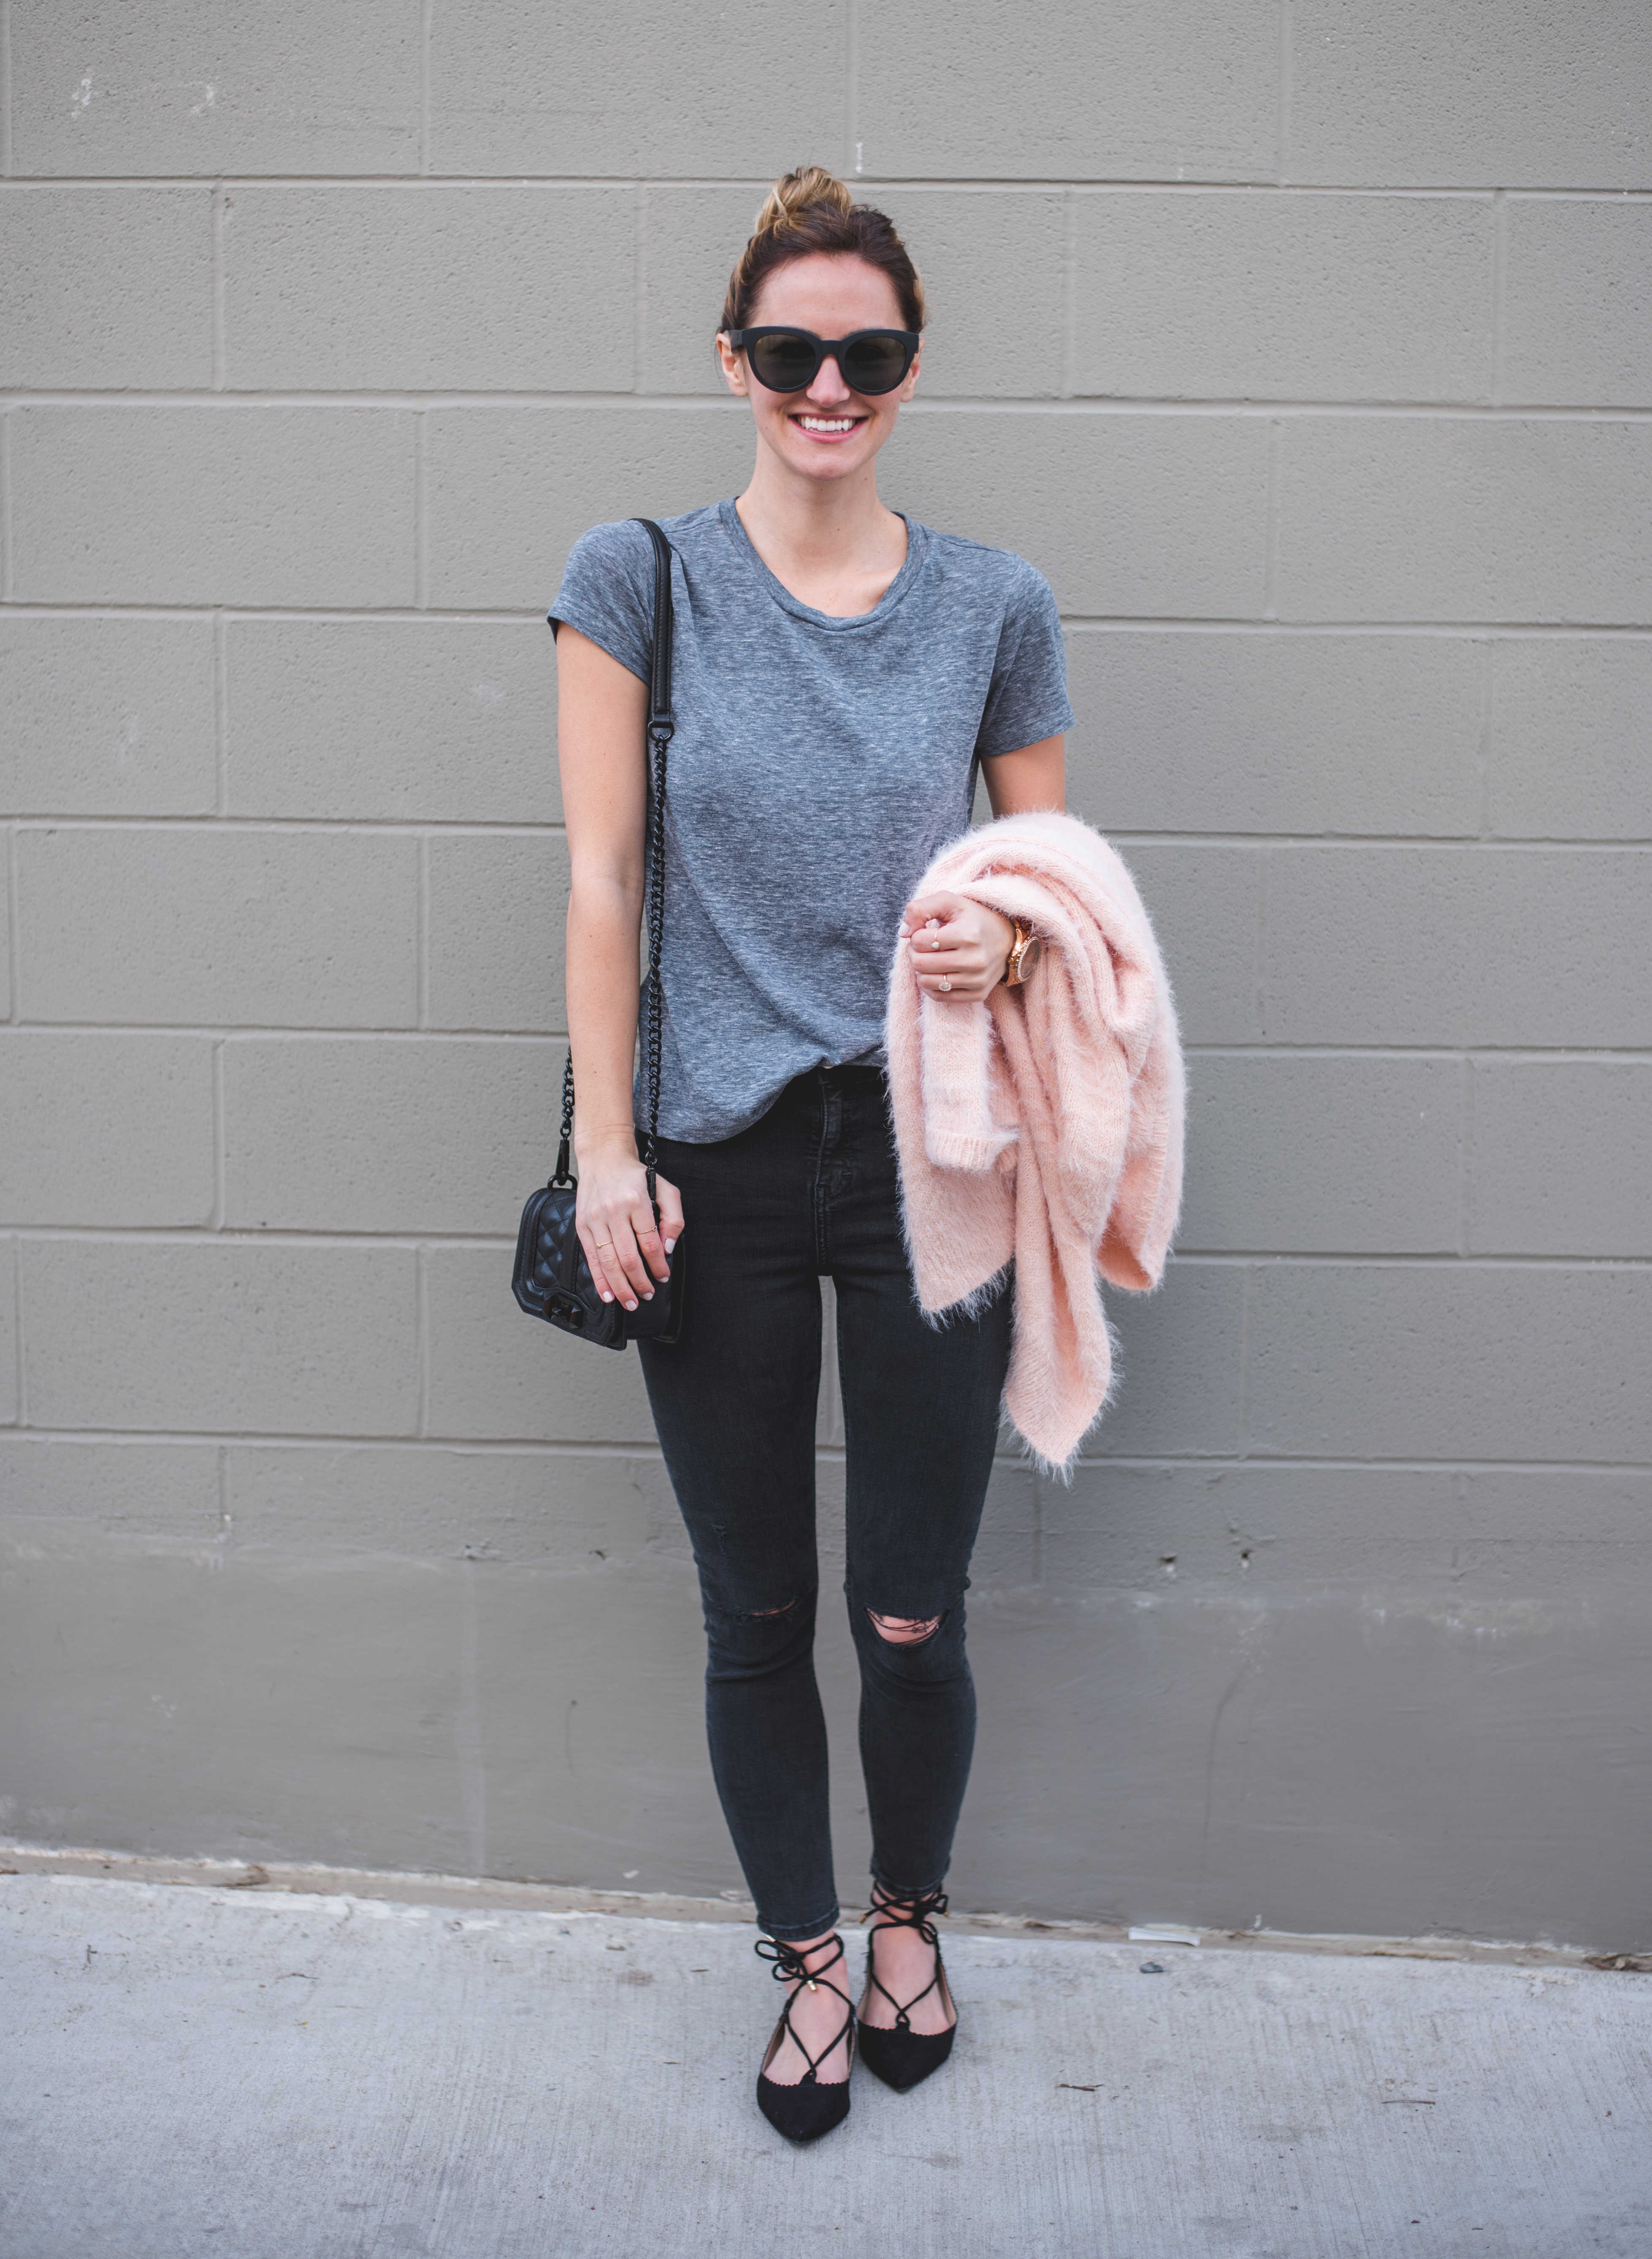 livvyland-blog-olivia-watson-austin-texas-fashion-blogger-topshop-distressed-black-skinny-jeans-lace-up-flats-blush-pink-cardigan-rebecca-minkoff-mini-love-crossbody-bag-gunmetal-3